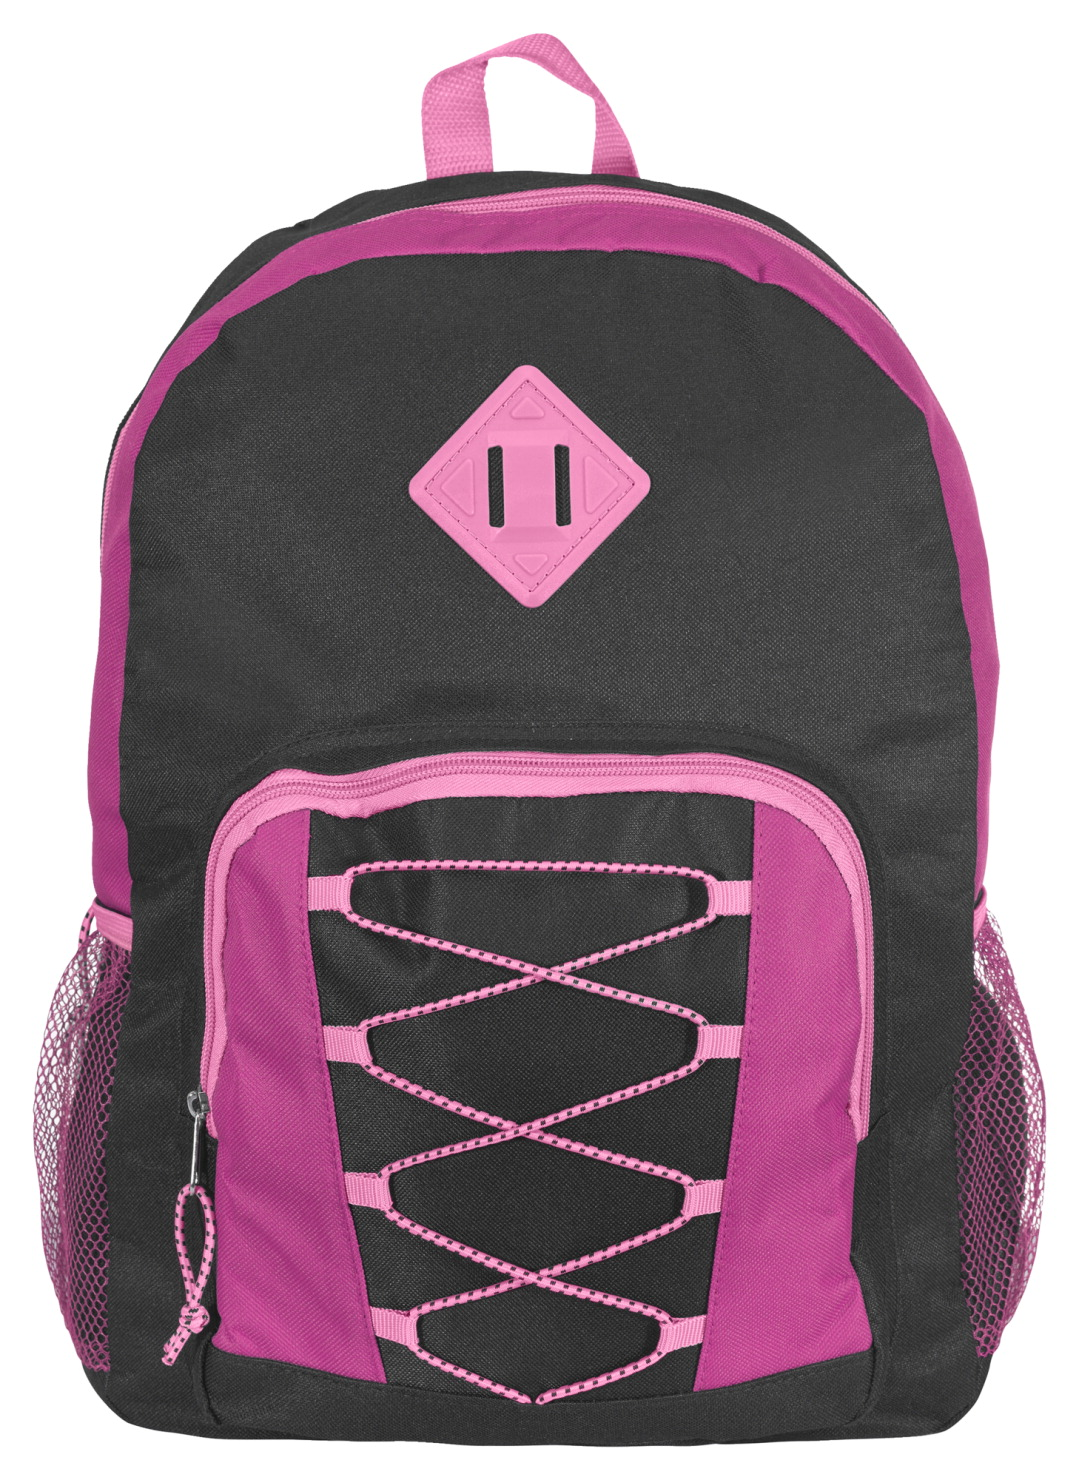 Junior Backpack with Bungee Cord, Charcoal, Pink, Light Pink, 17 x 12 x 5-1/2 inches